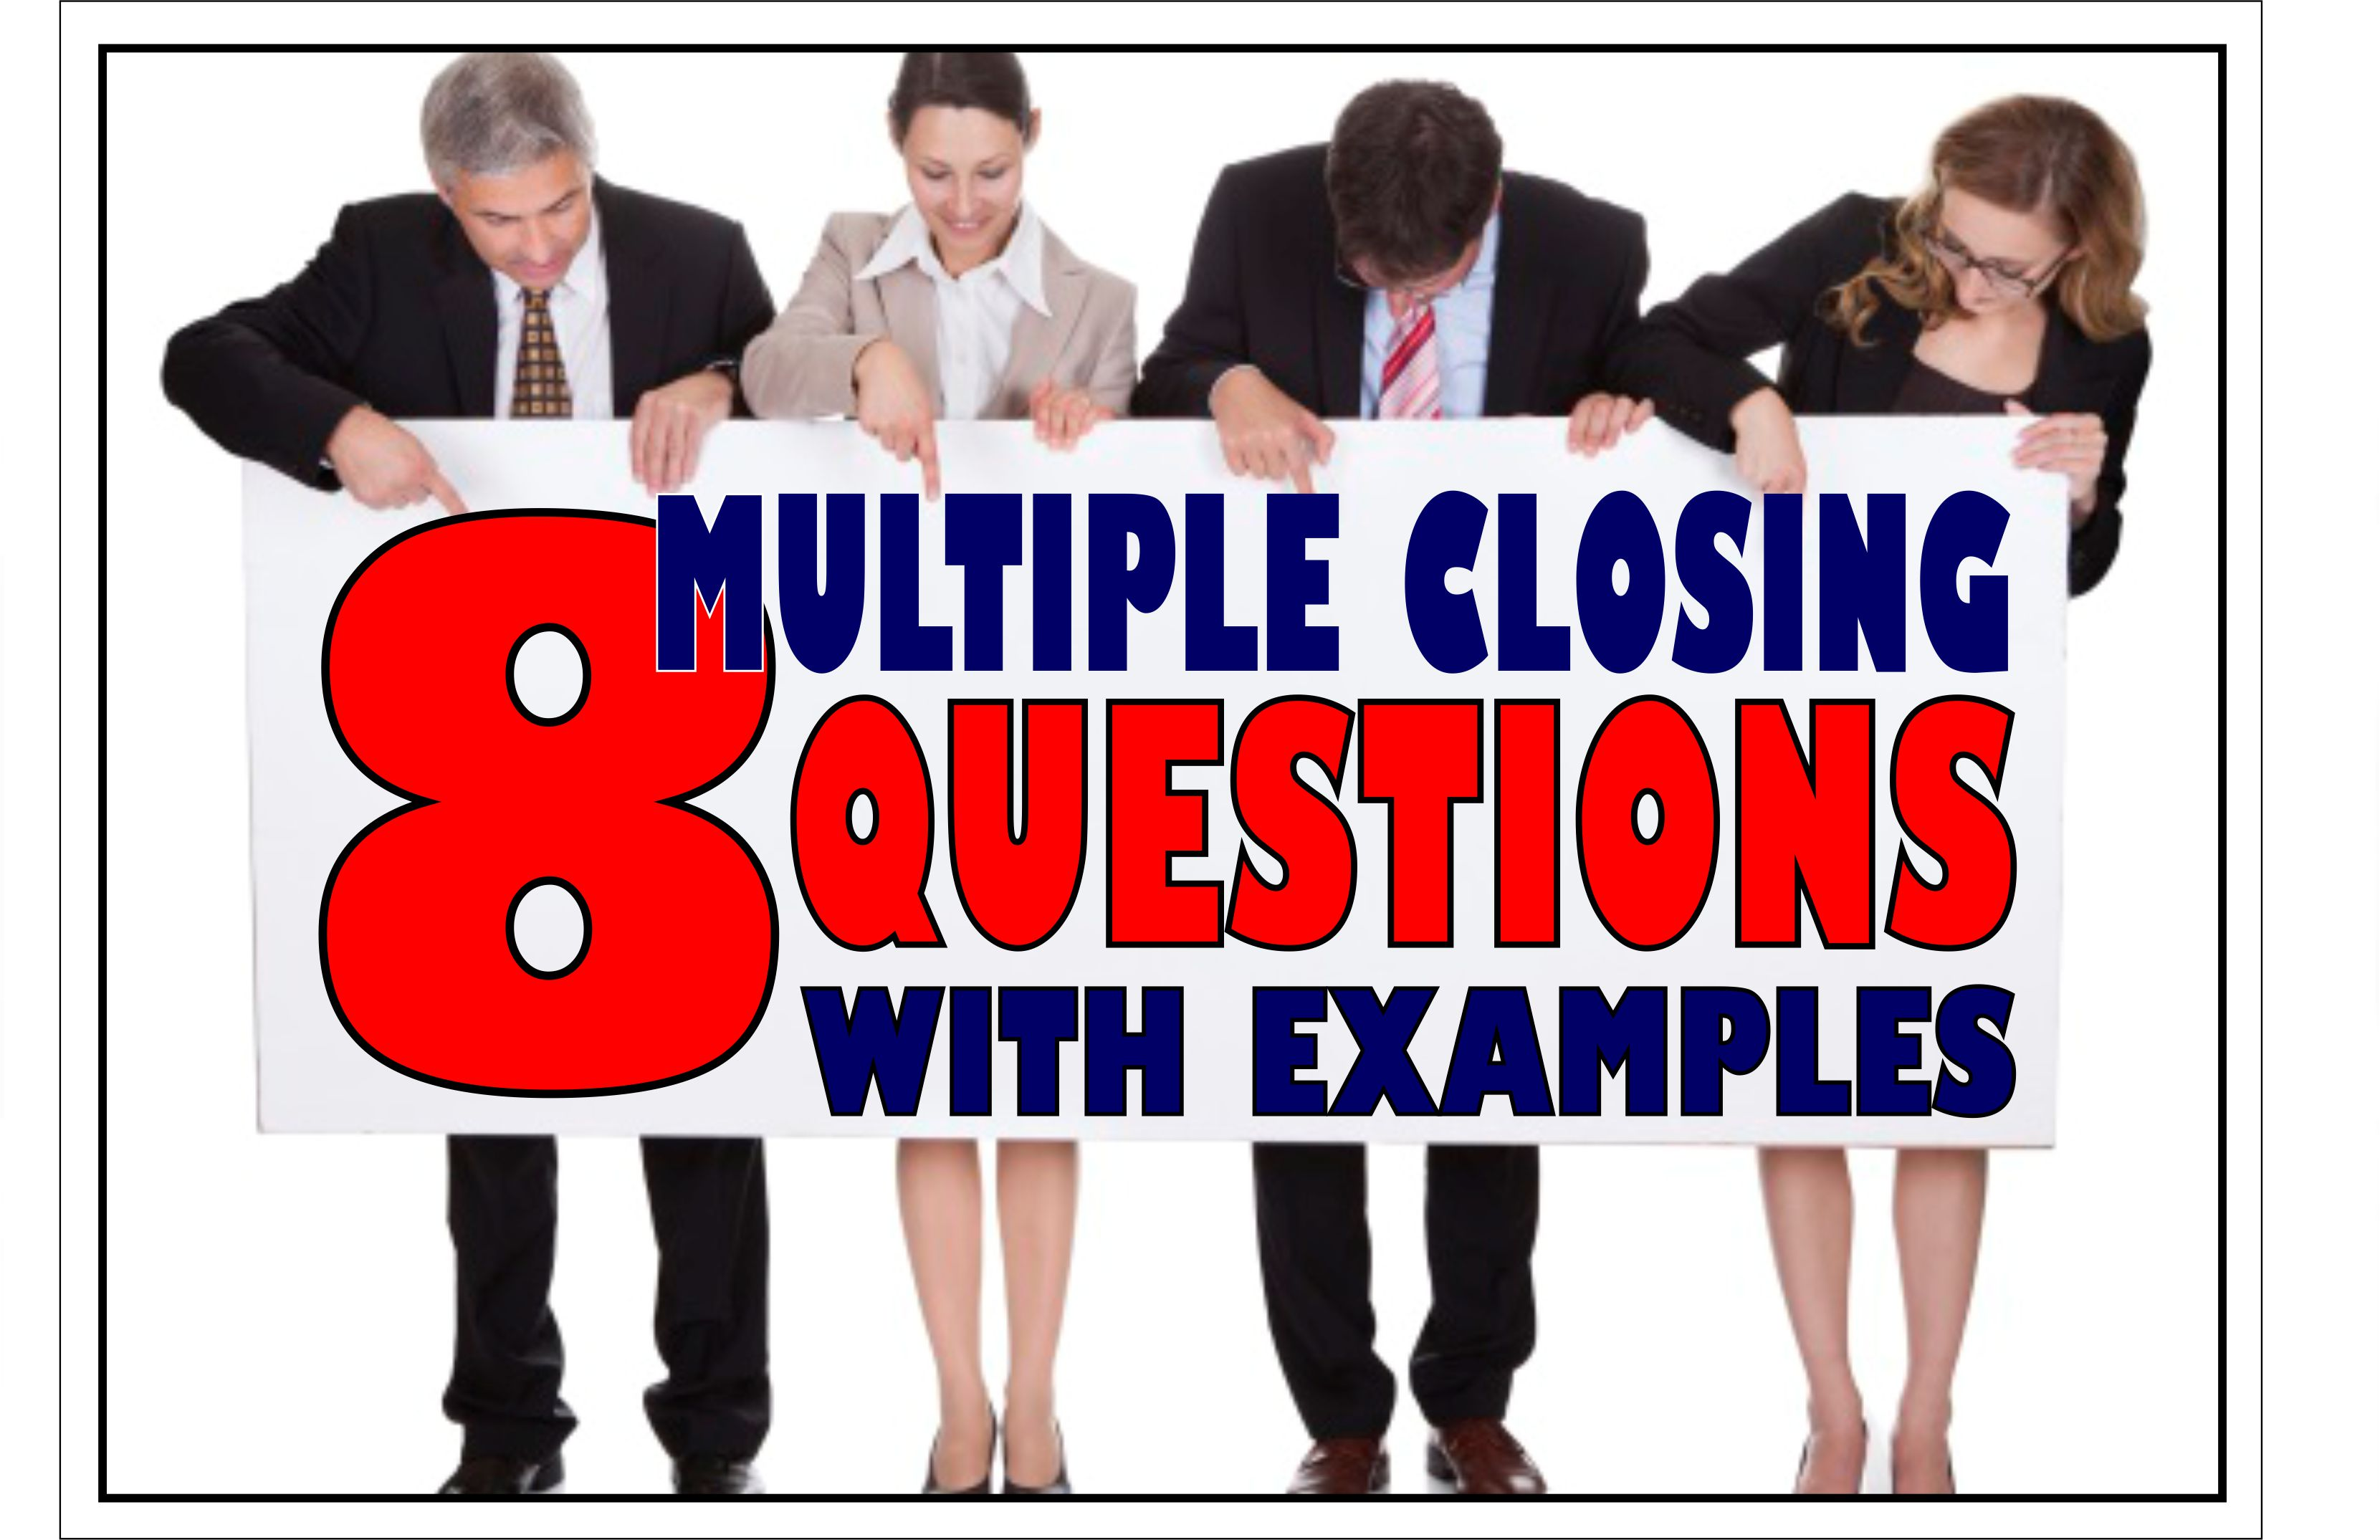 8 Multiple Closing Questions With Examples